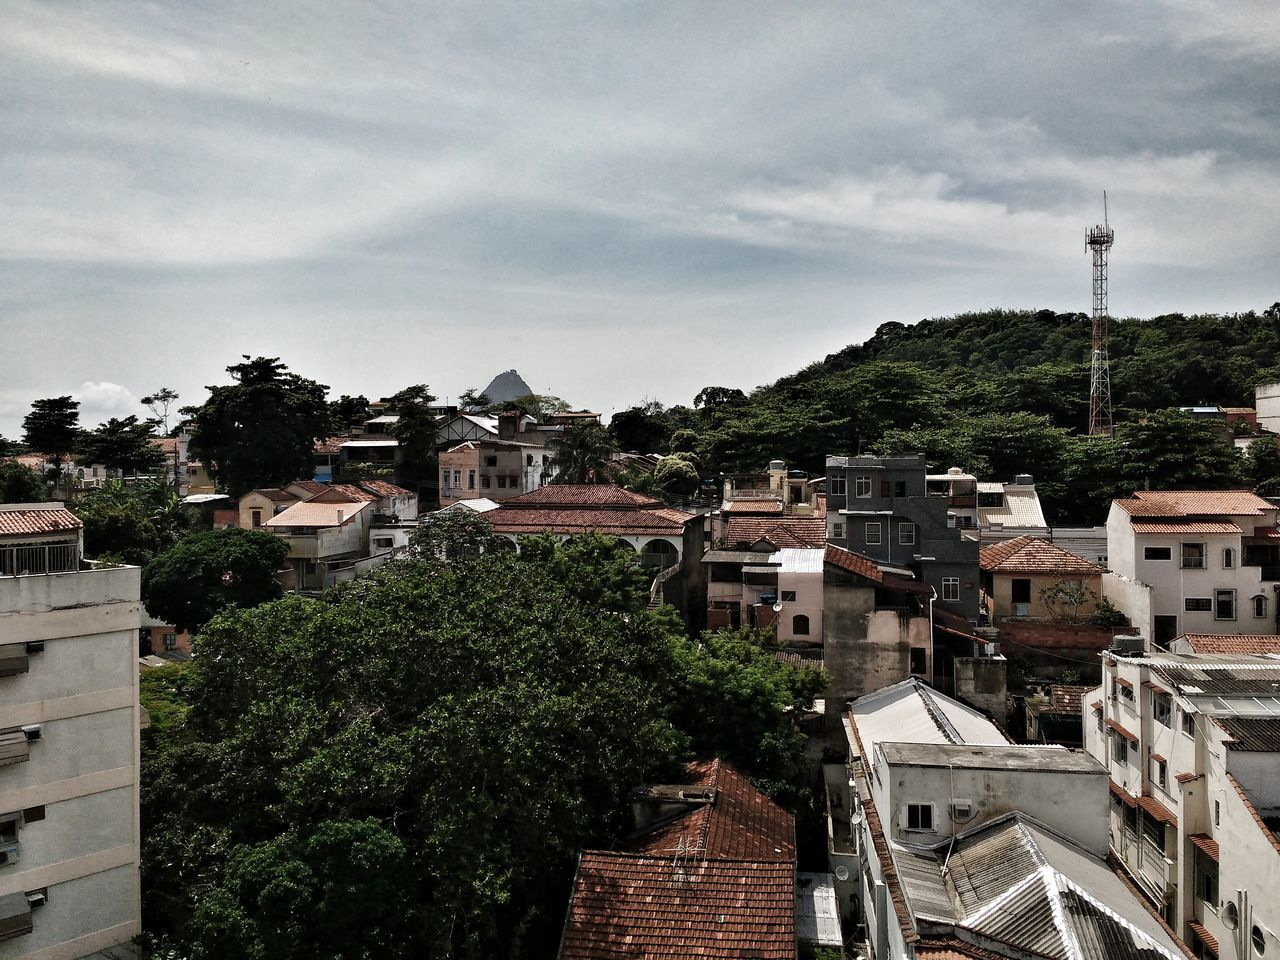 Building Exterior Architecture Sky Built Structure Tree City Cloud - Sky House Outdoors Travel Destinations Cityscape No People Day Panoramic High Definition Mountains Brazilian Sugarloaf Mountain Clouds And Sky HDR Tropical Backgrounds Full Frame Nature Urban Skyline